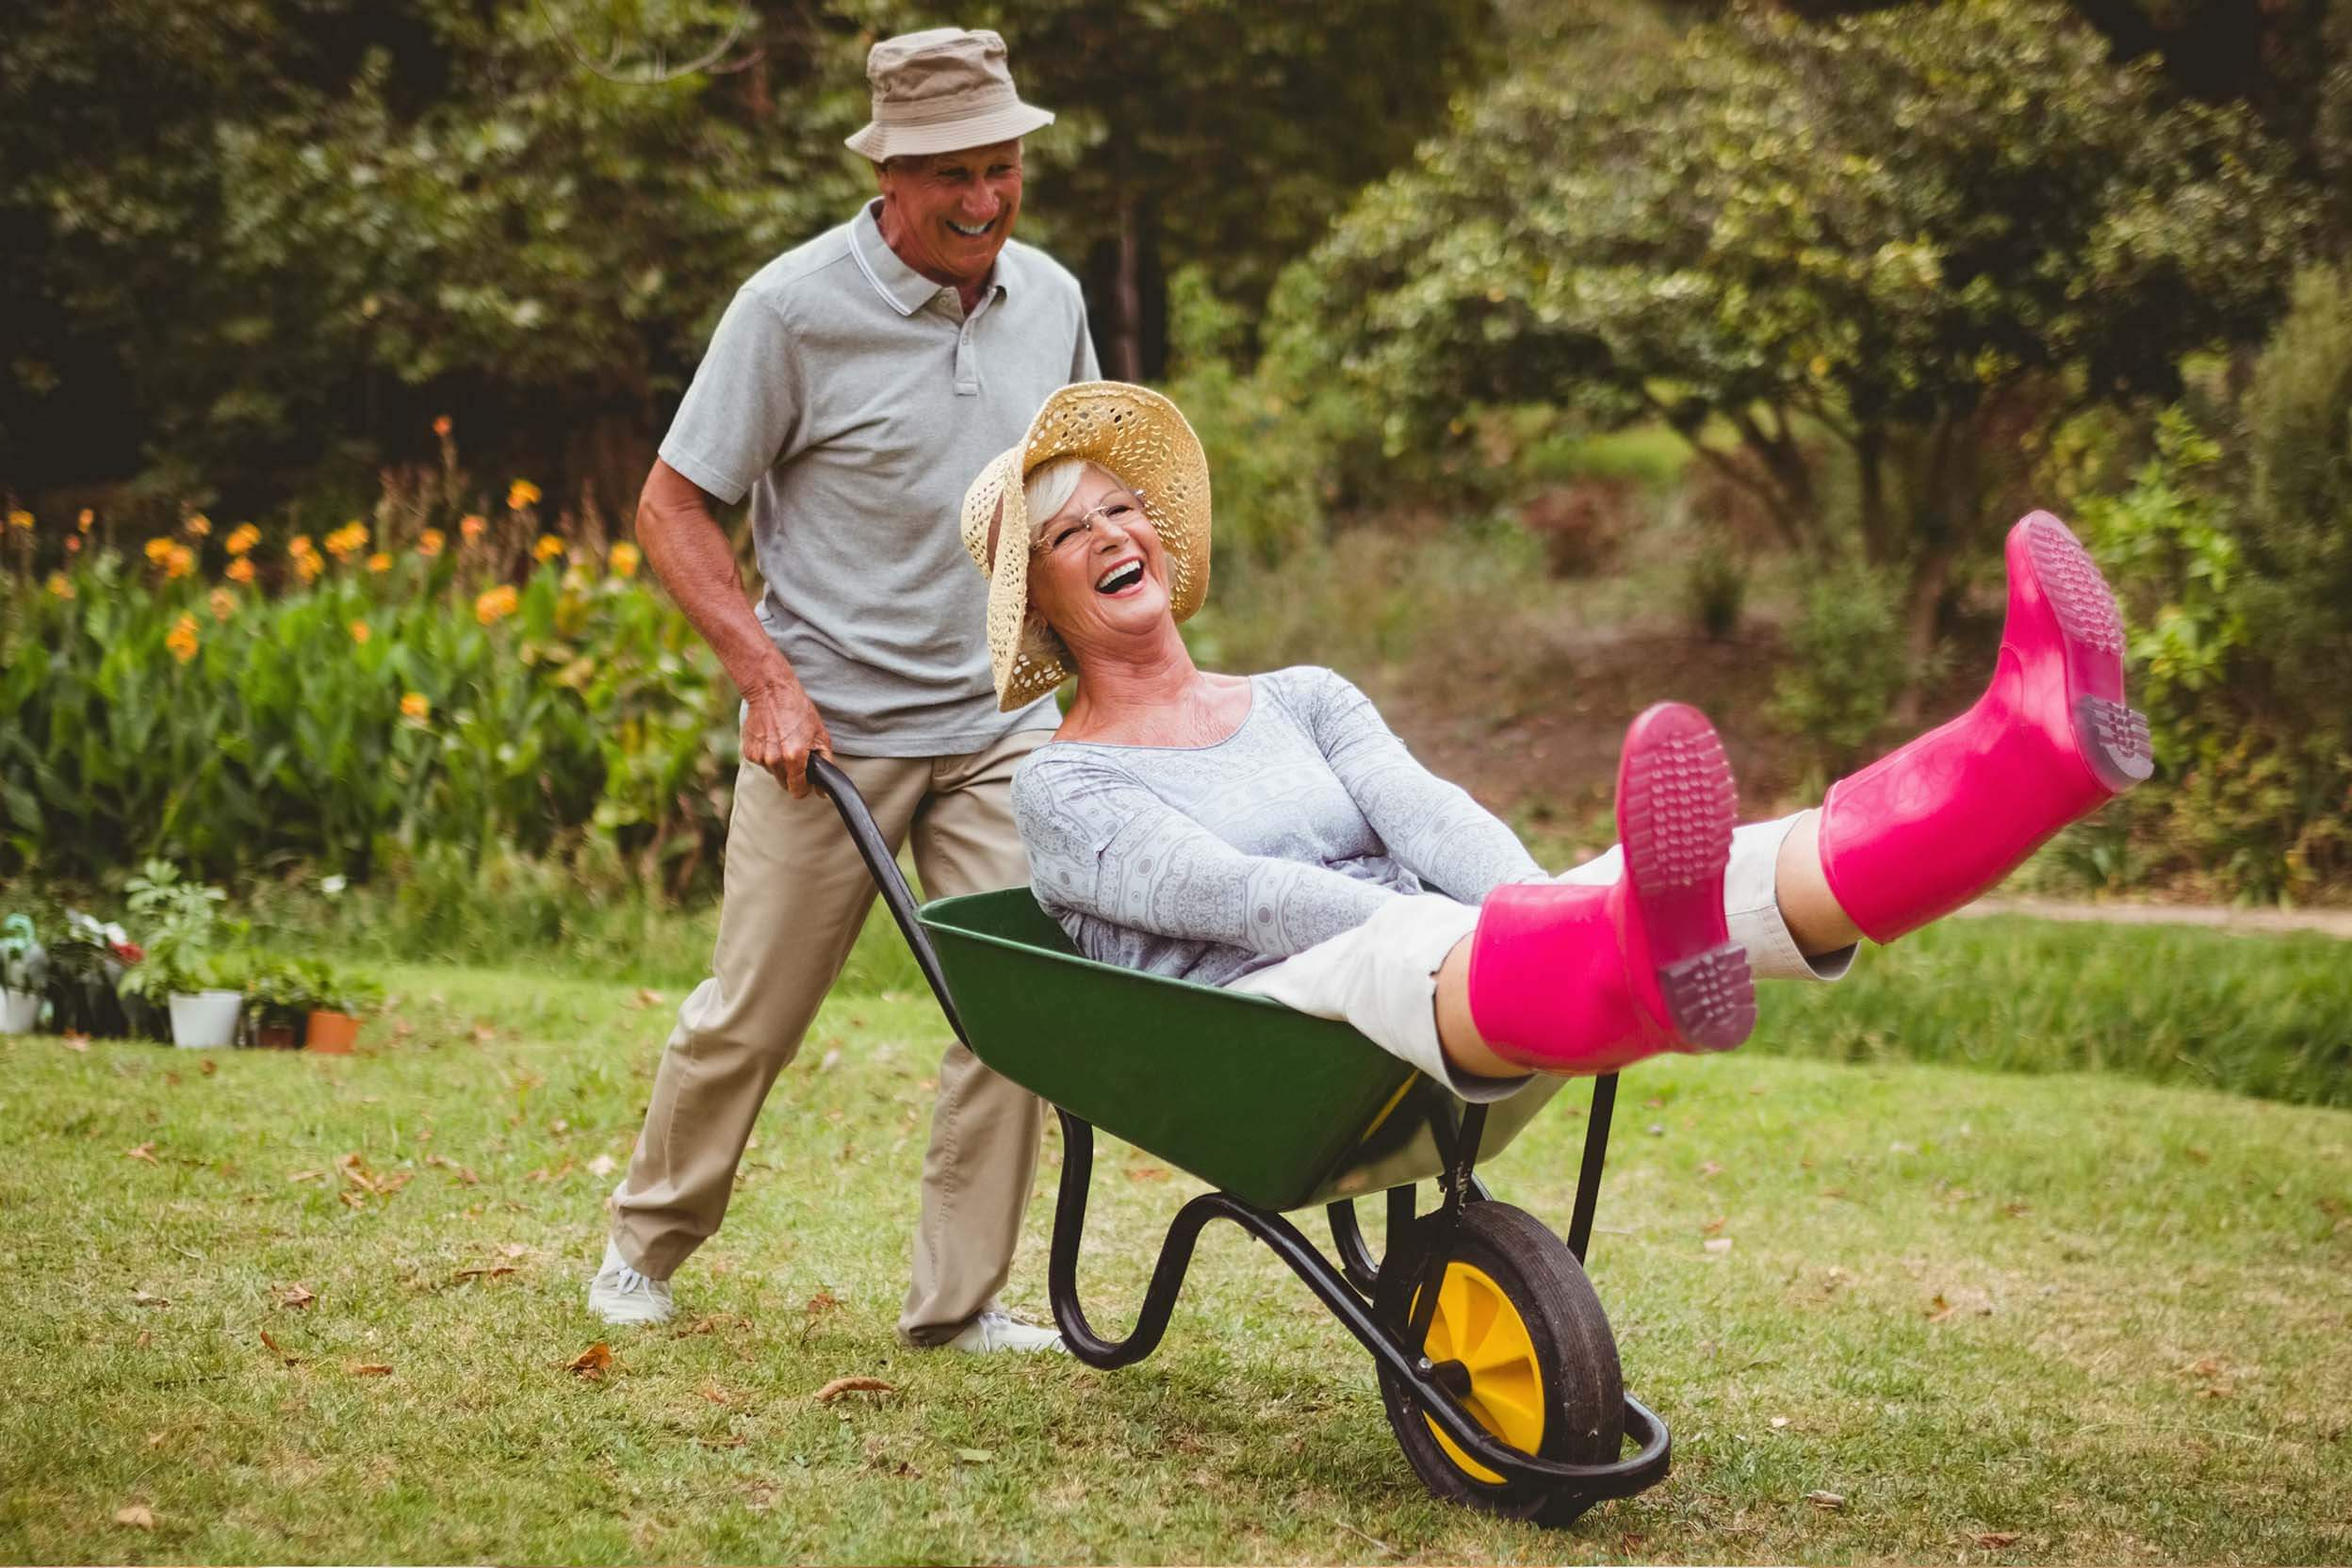 An older man laughing and pushing his happy wife around in a wheelbarrow